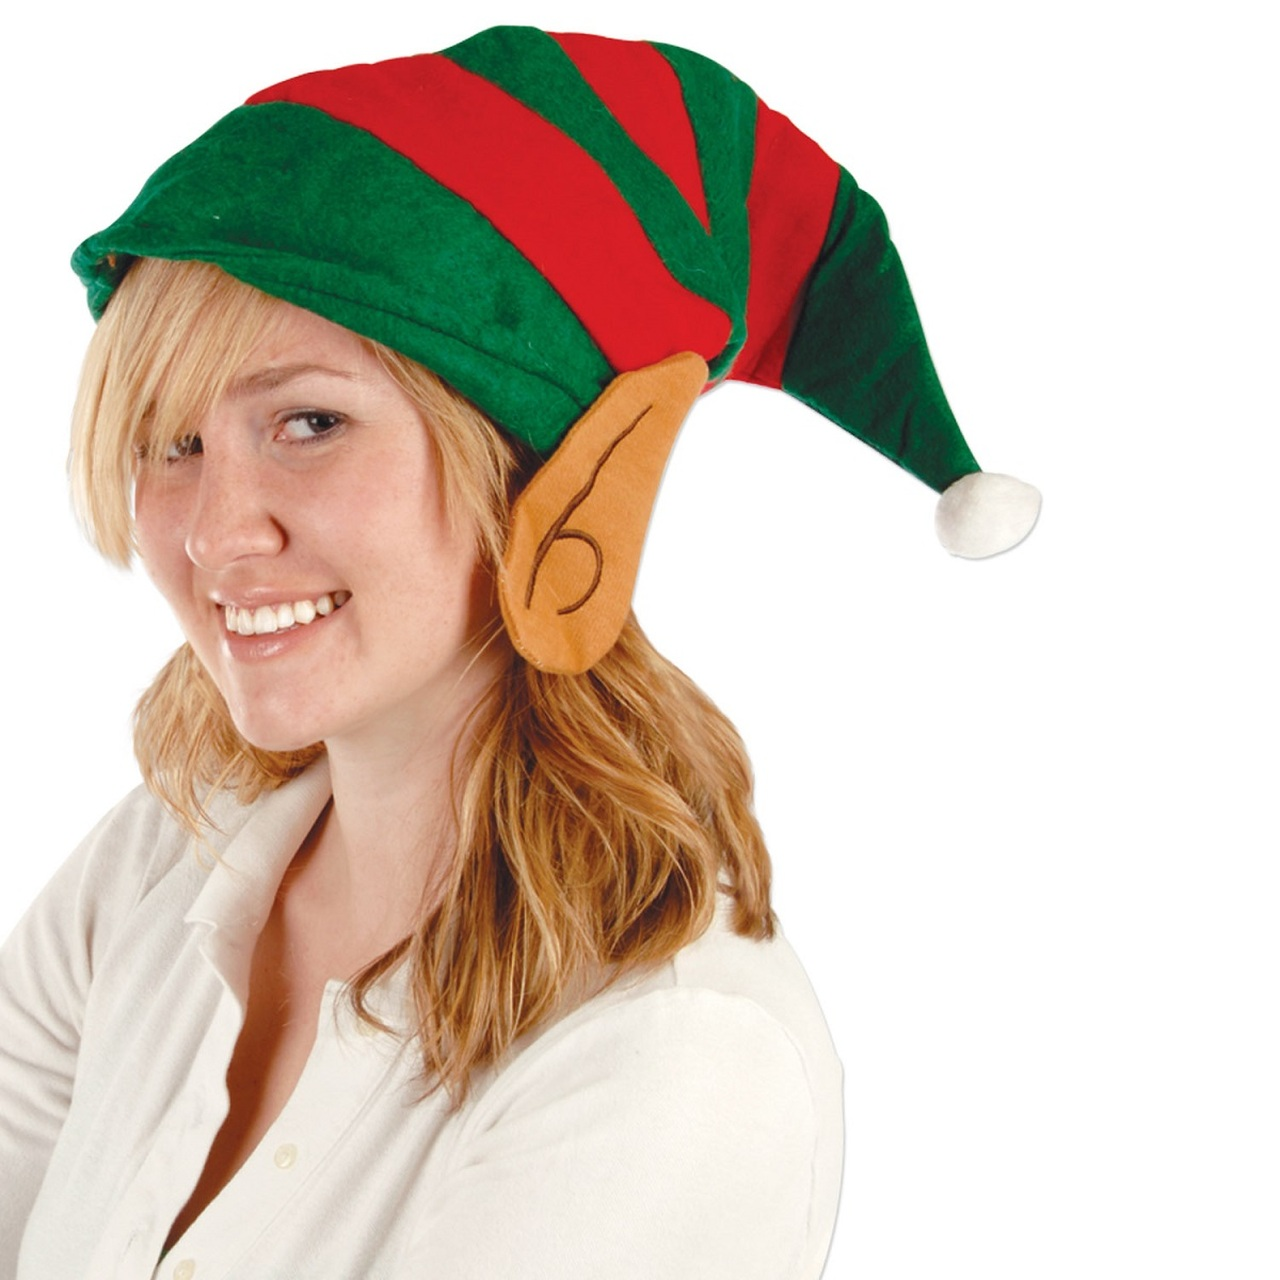 d3c970a446a Club Pack of 12 Red   Green Striped Felt Elf Hat with Ears - Adult ...